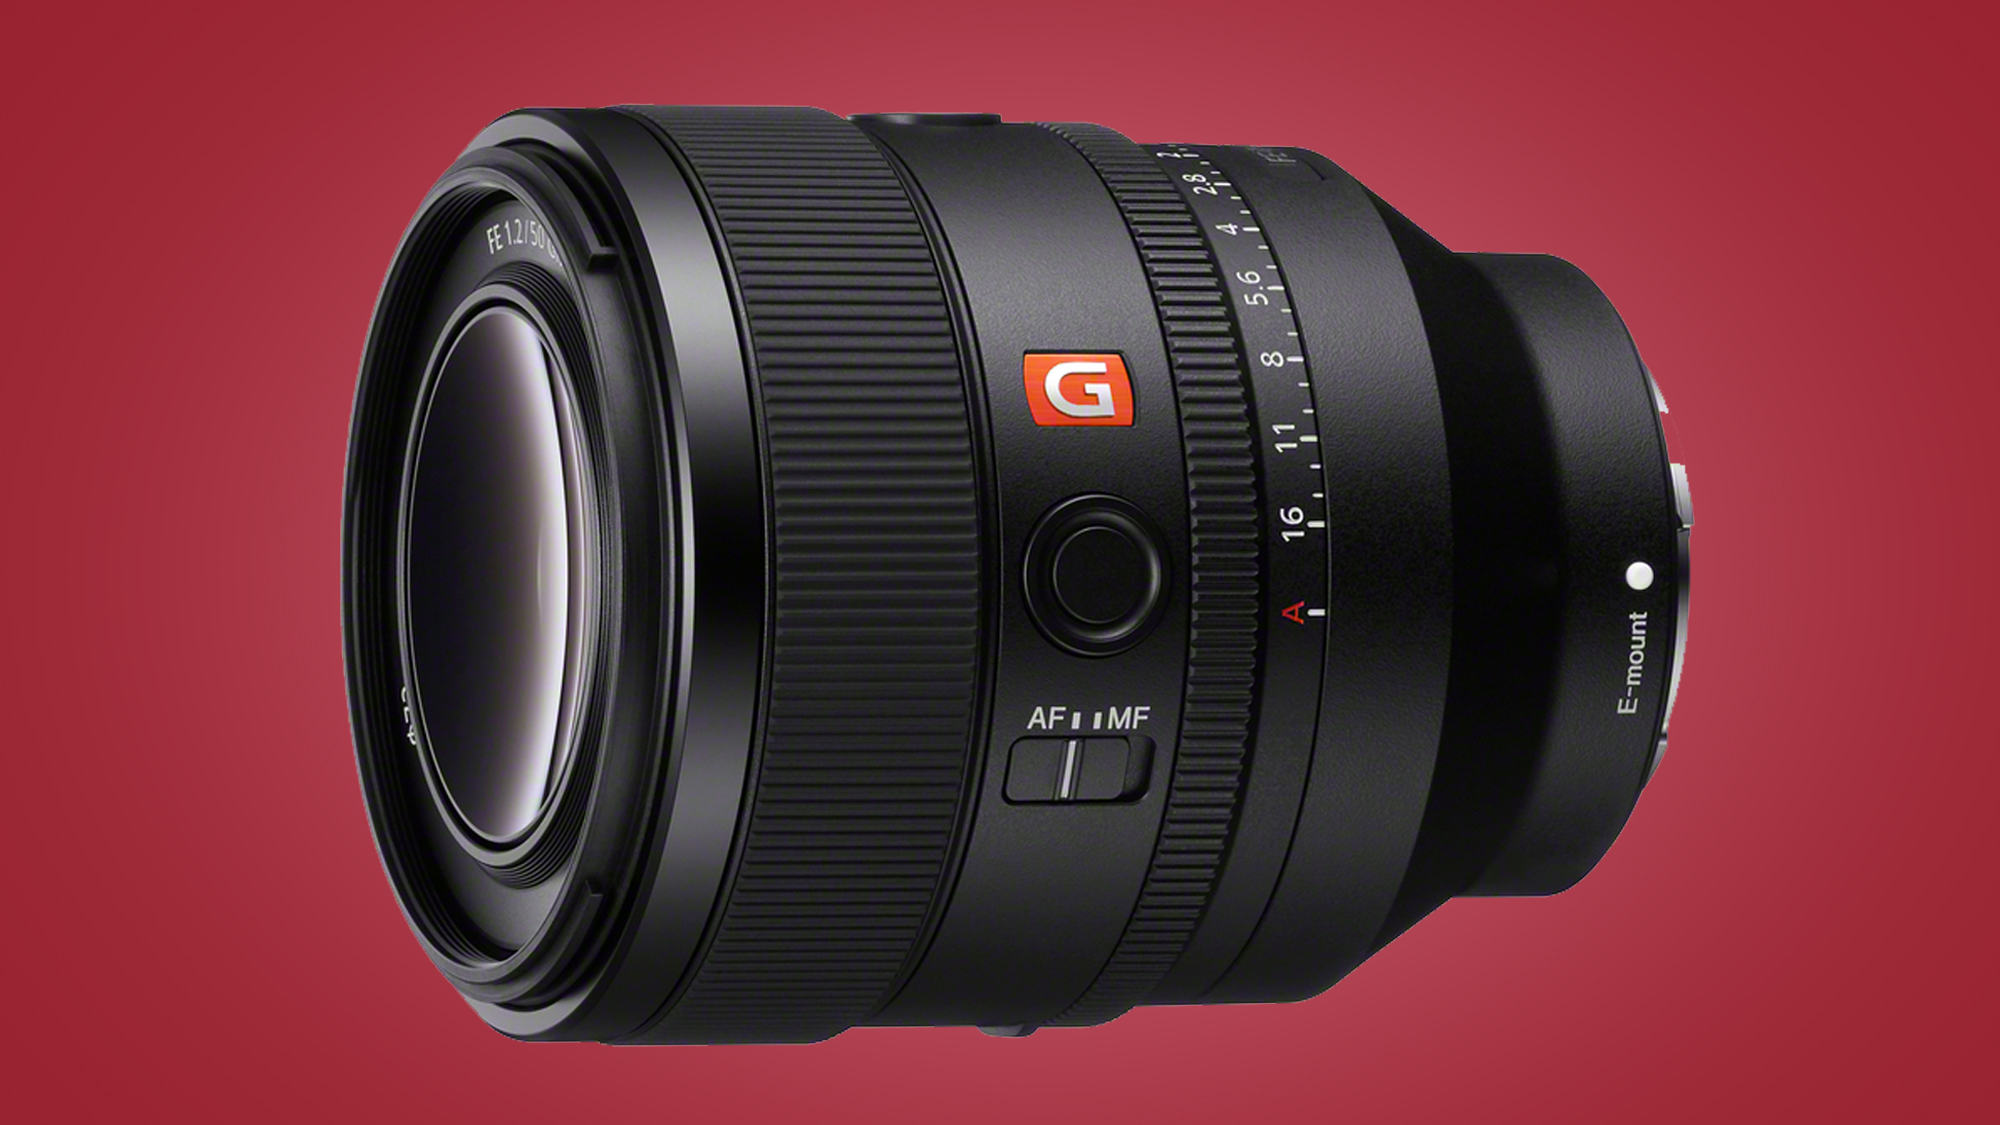 Sony introduces FE 50mm F1.2 G Master Lens for Alpha series cameras in India